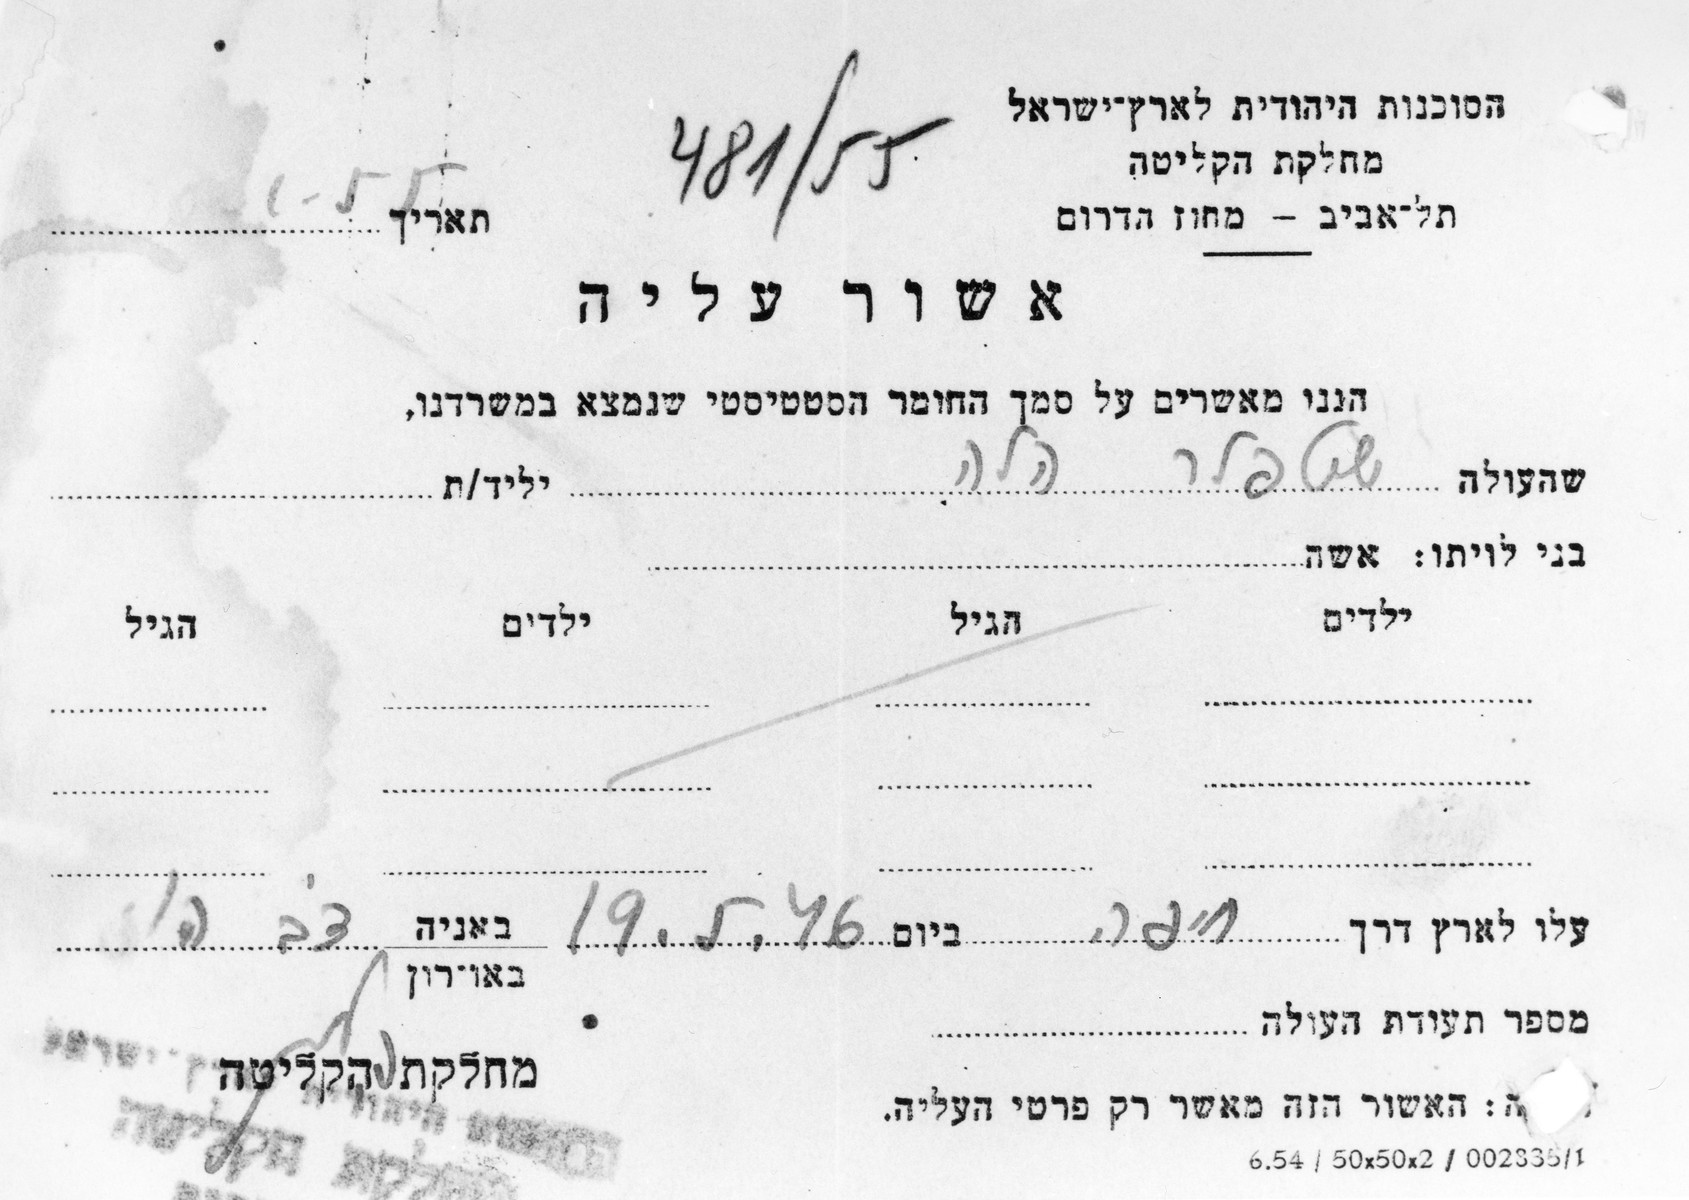 Aliya certificate for Helcia Stapler testifying that she immigrated to Palestine on board the ship the Dov Hos.